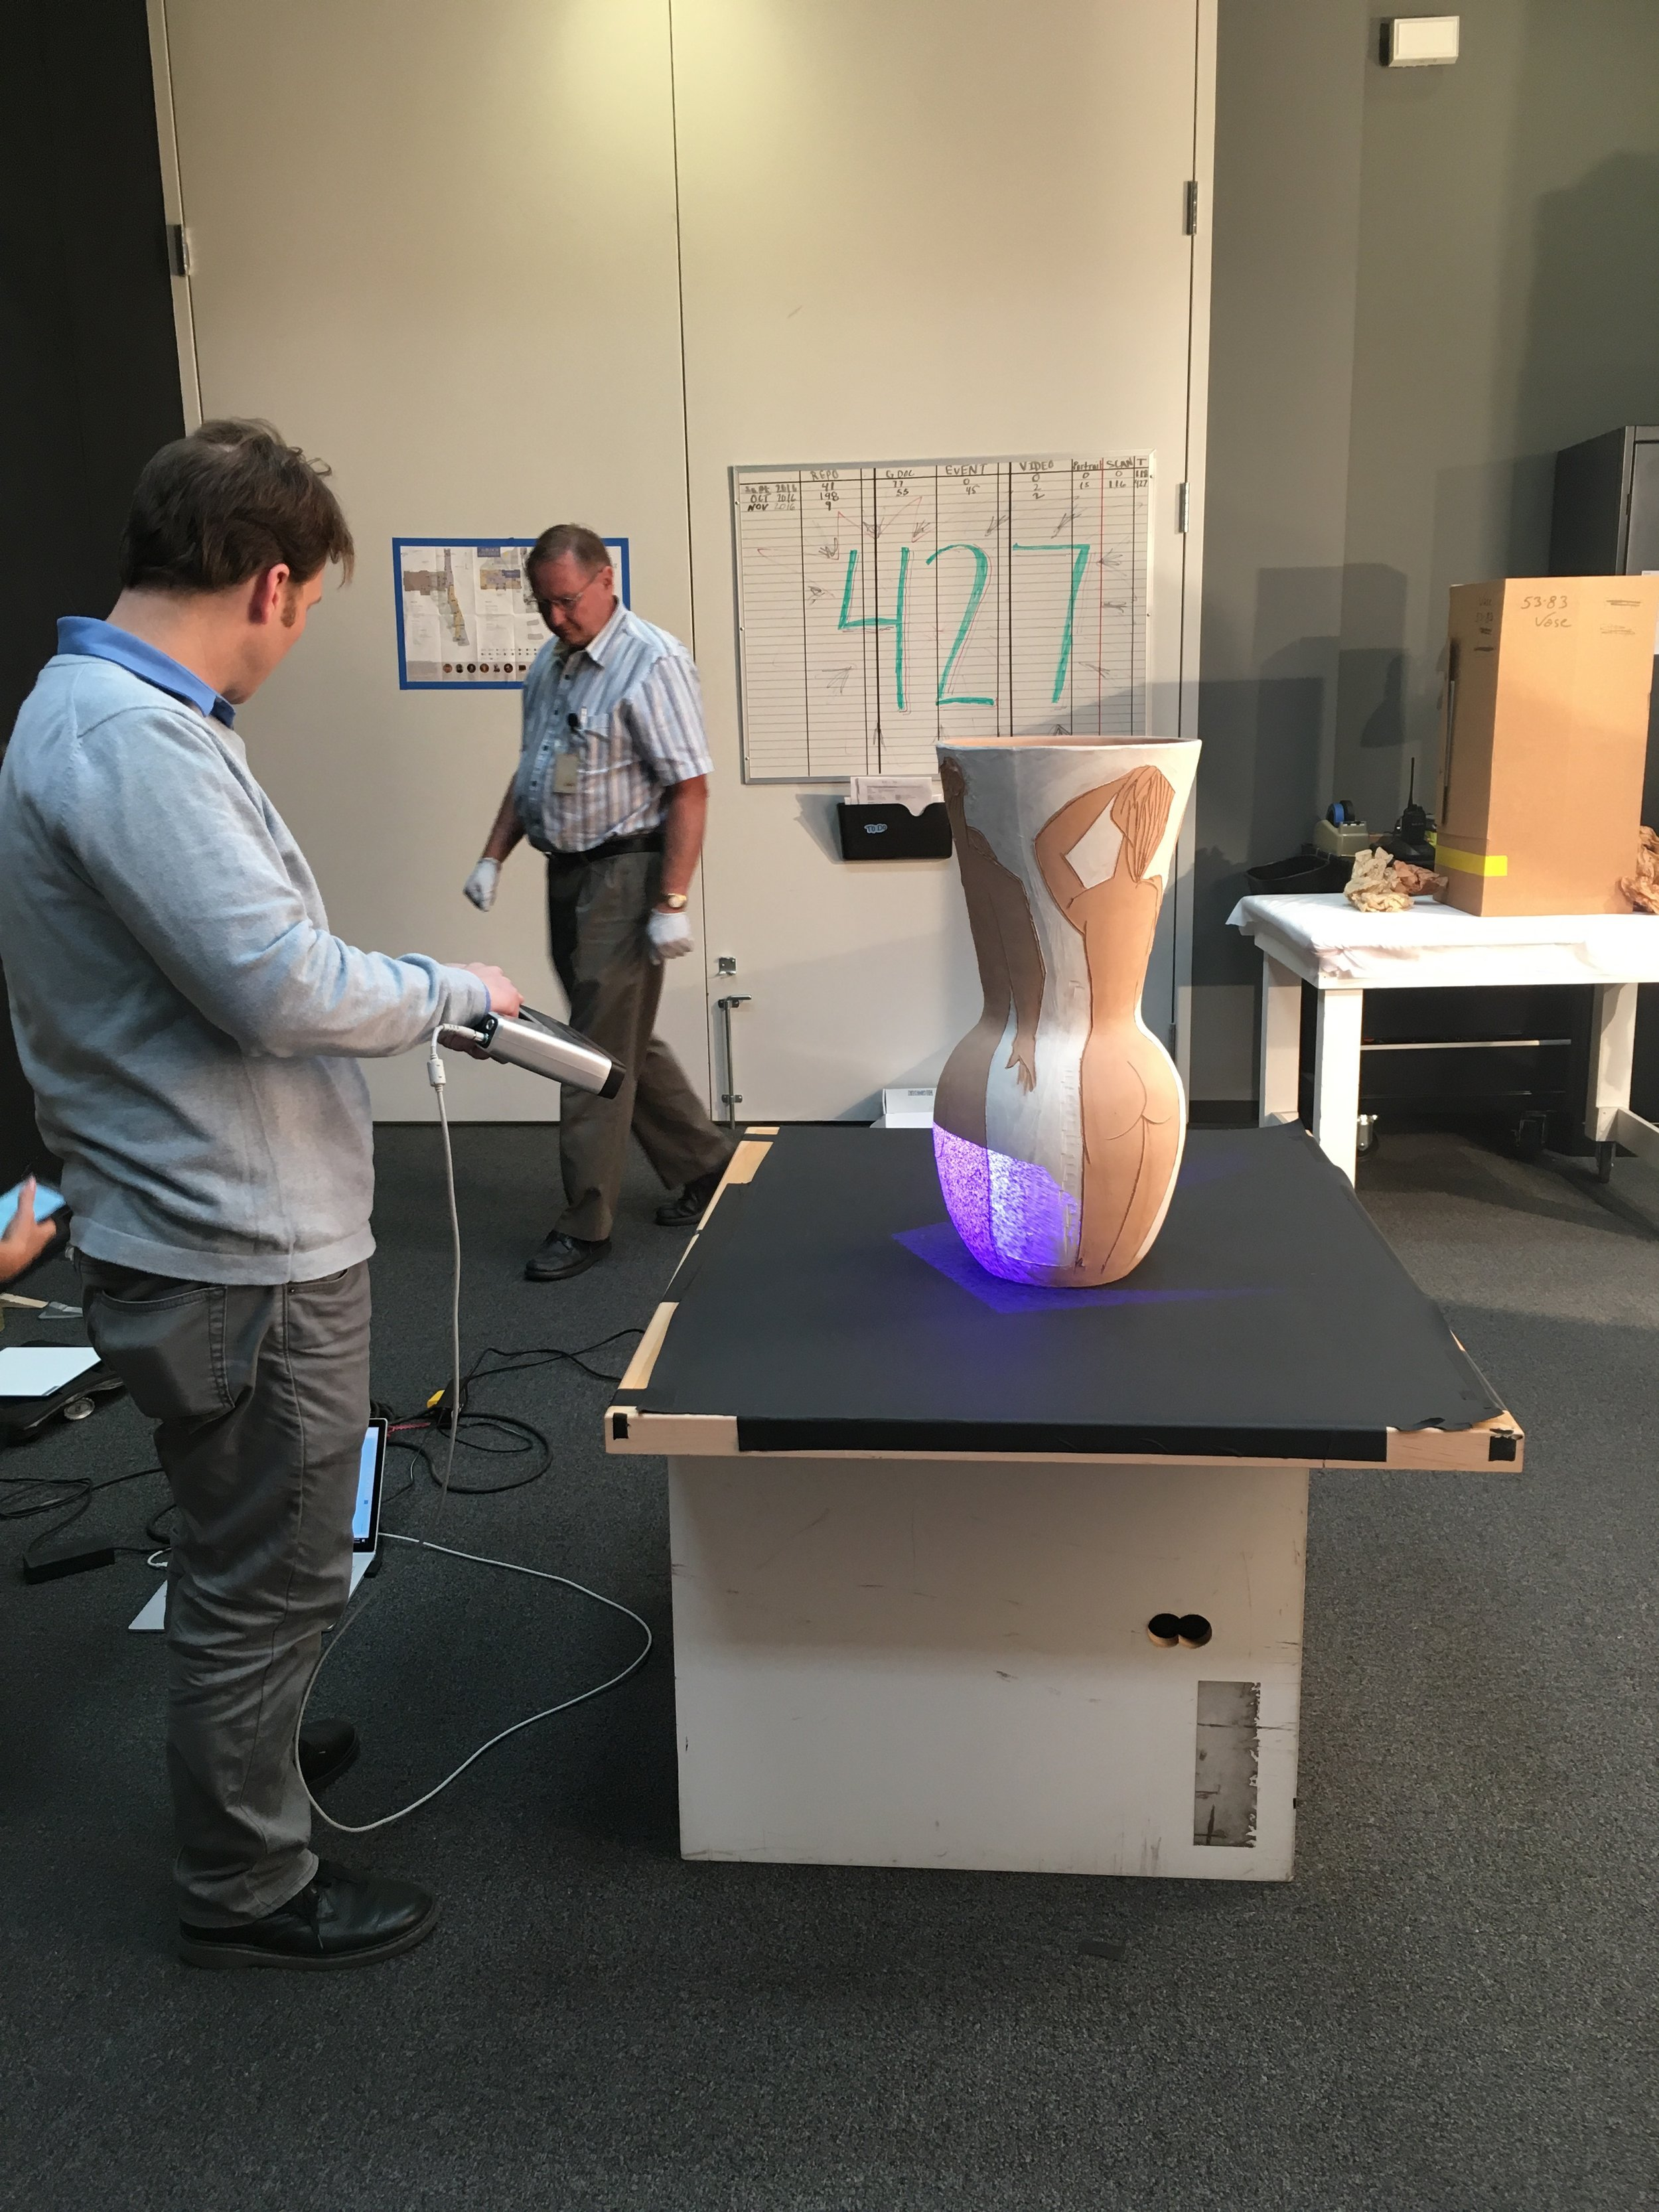 The Picasso Vase Being scanned